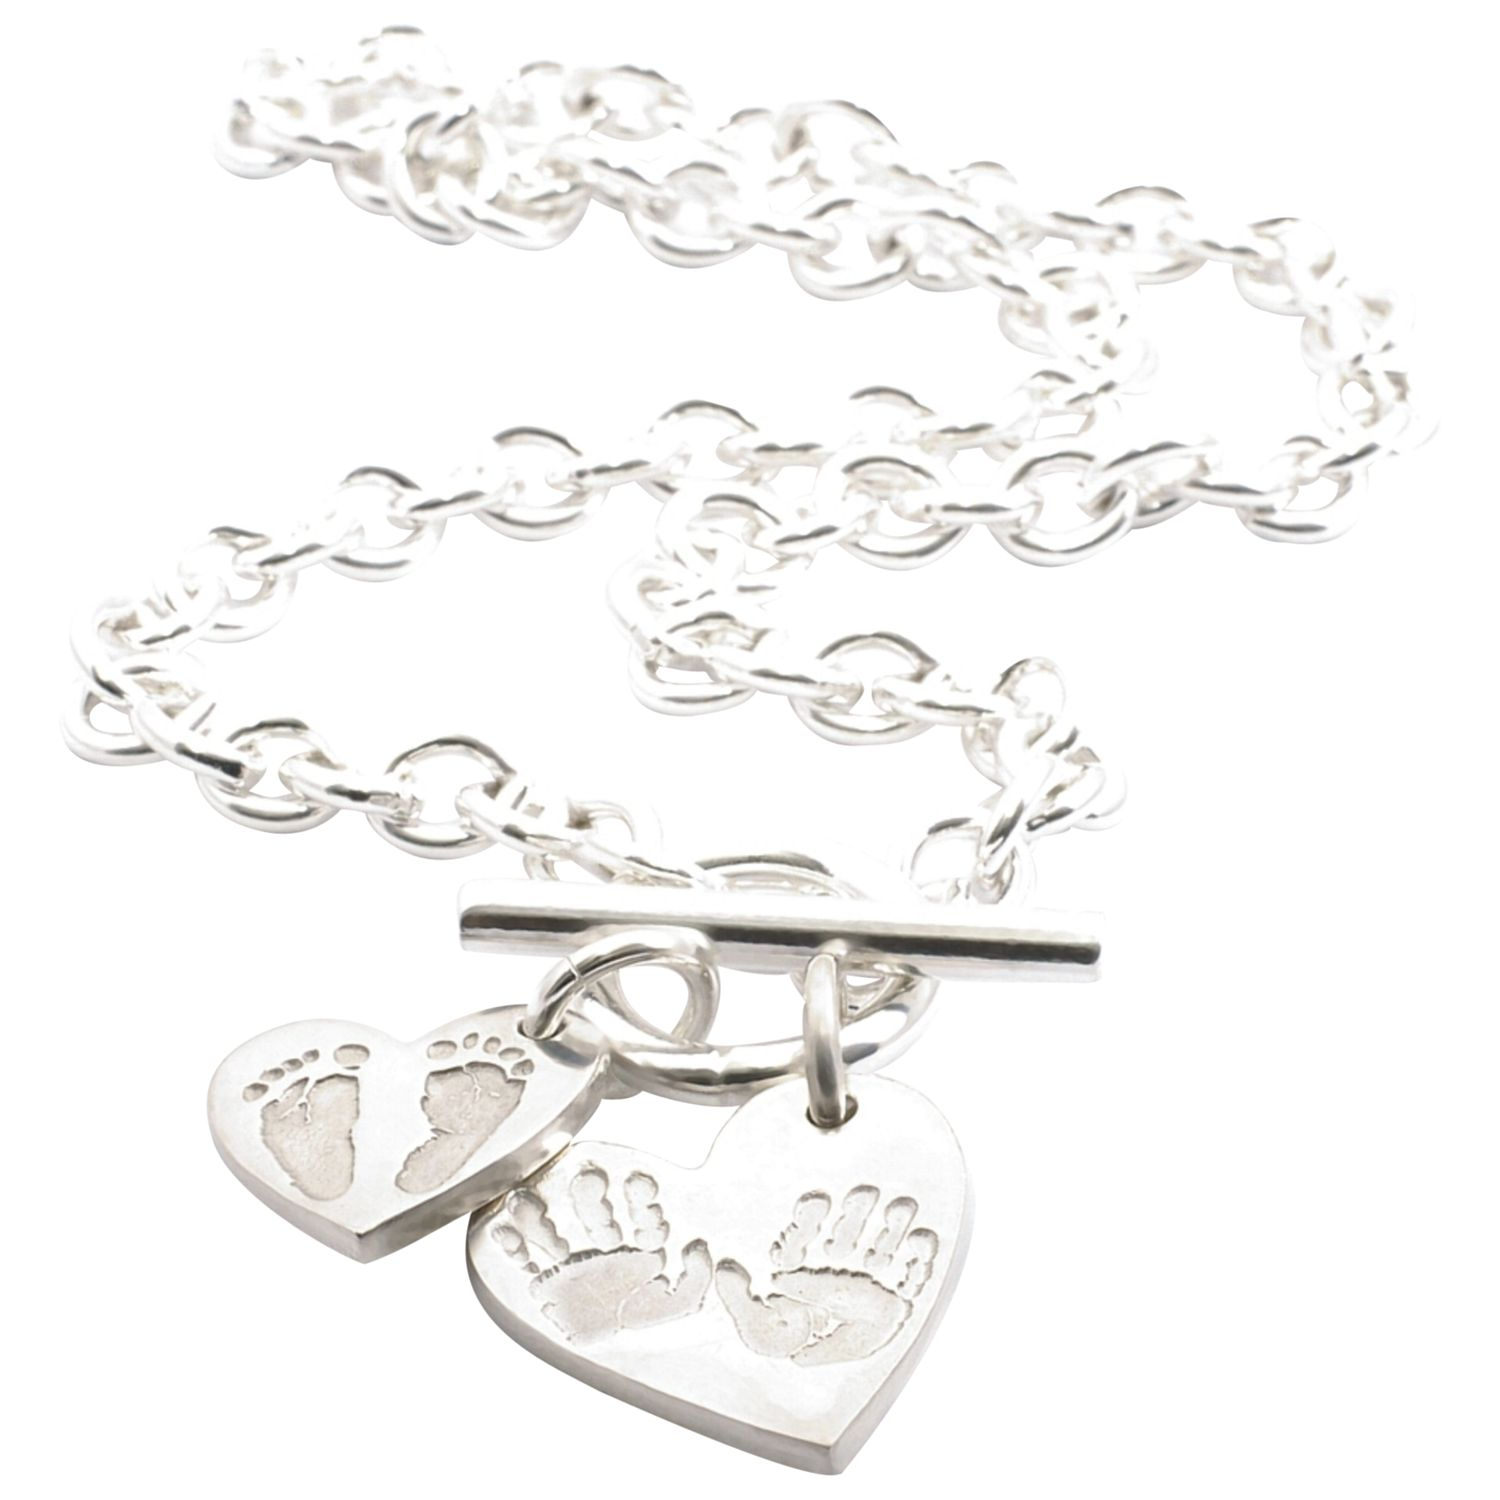 FingerPrint Jewellery FingerPrint Jewellery Ten Tiny Toes Heart Pendant and Charm Necklace, Silver